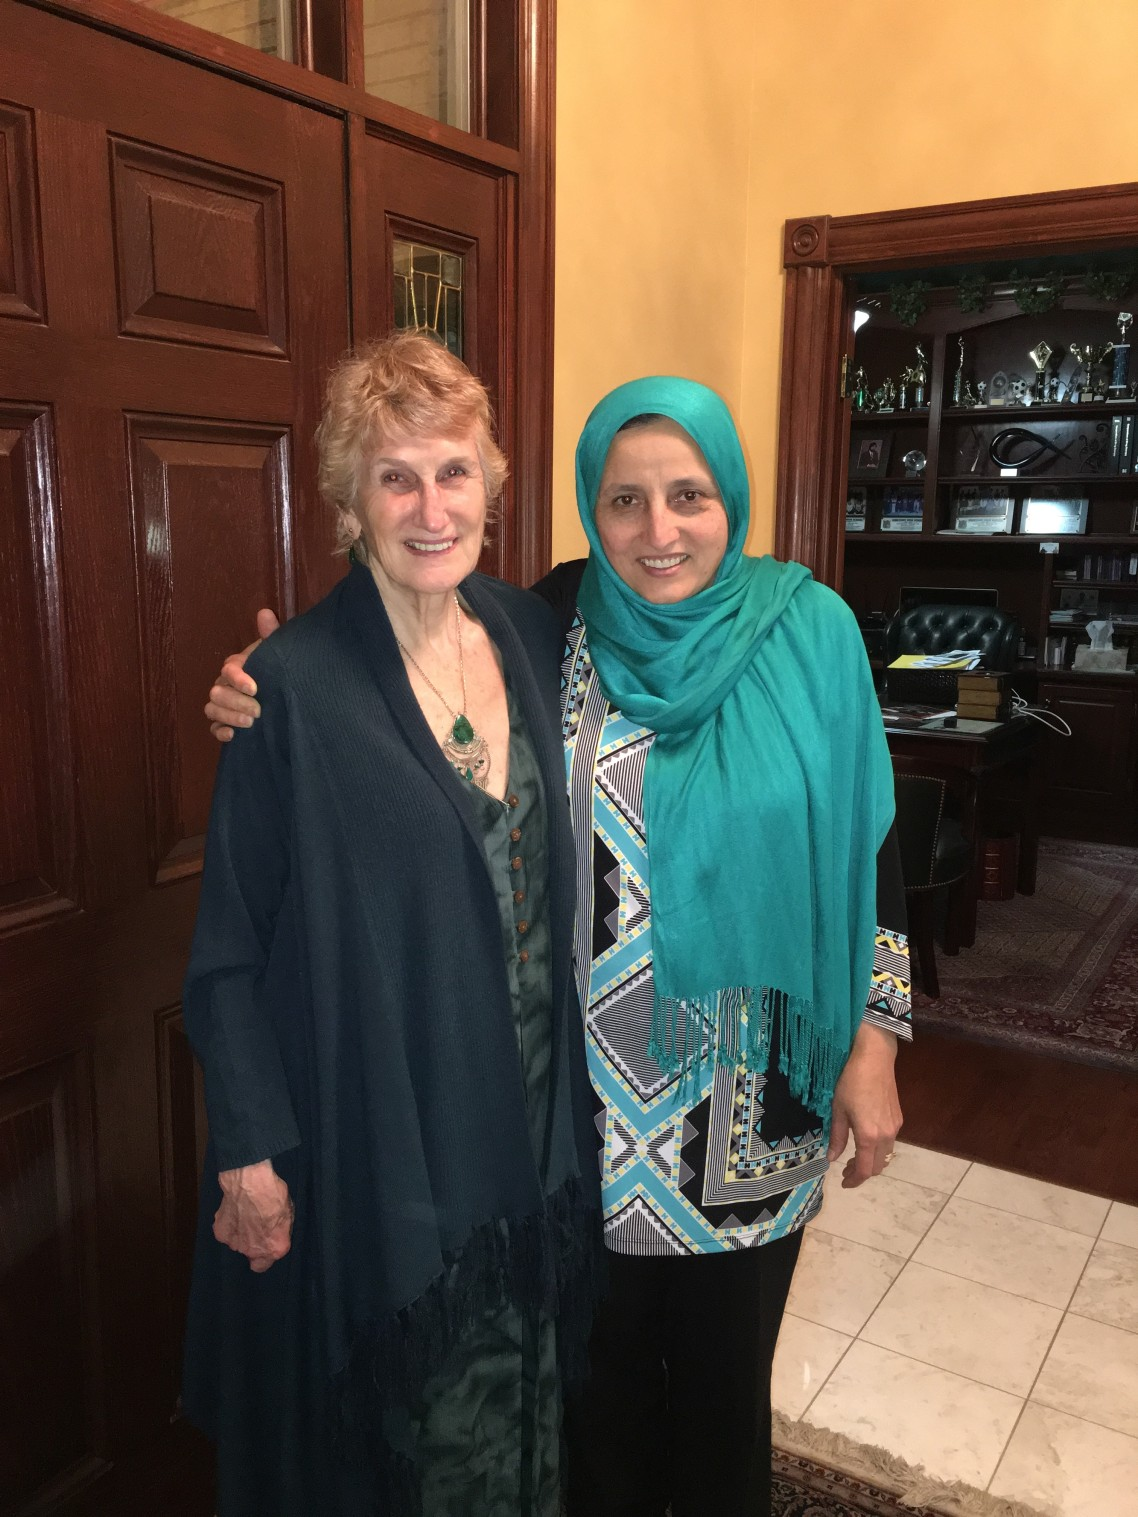 Bibi pictured with friend and fellow Rotarian, Barbara Maves. Barbara is the Projects Chair for the Rotarian Action Group for Population & Development. She is also one of the primary contacts for the global grant project AWAKEN is working with Rotary clubs on.